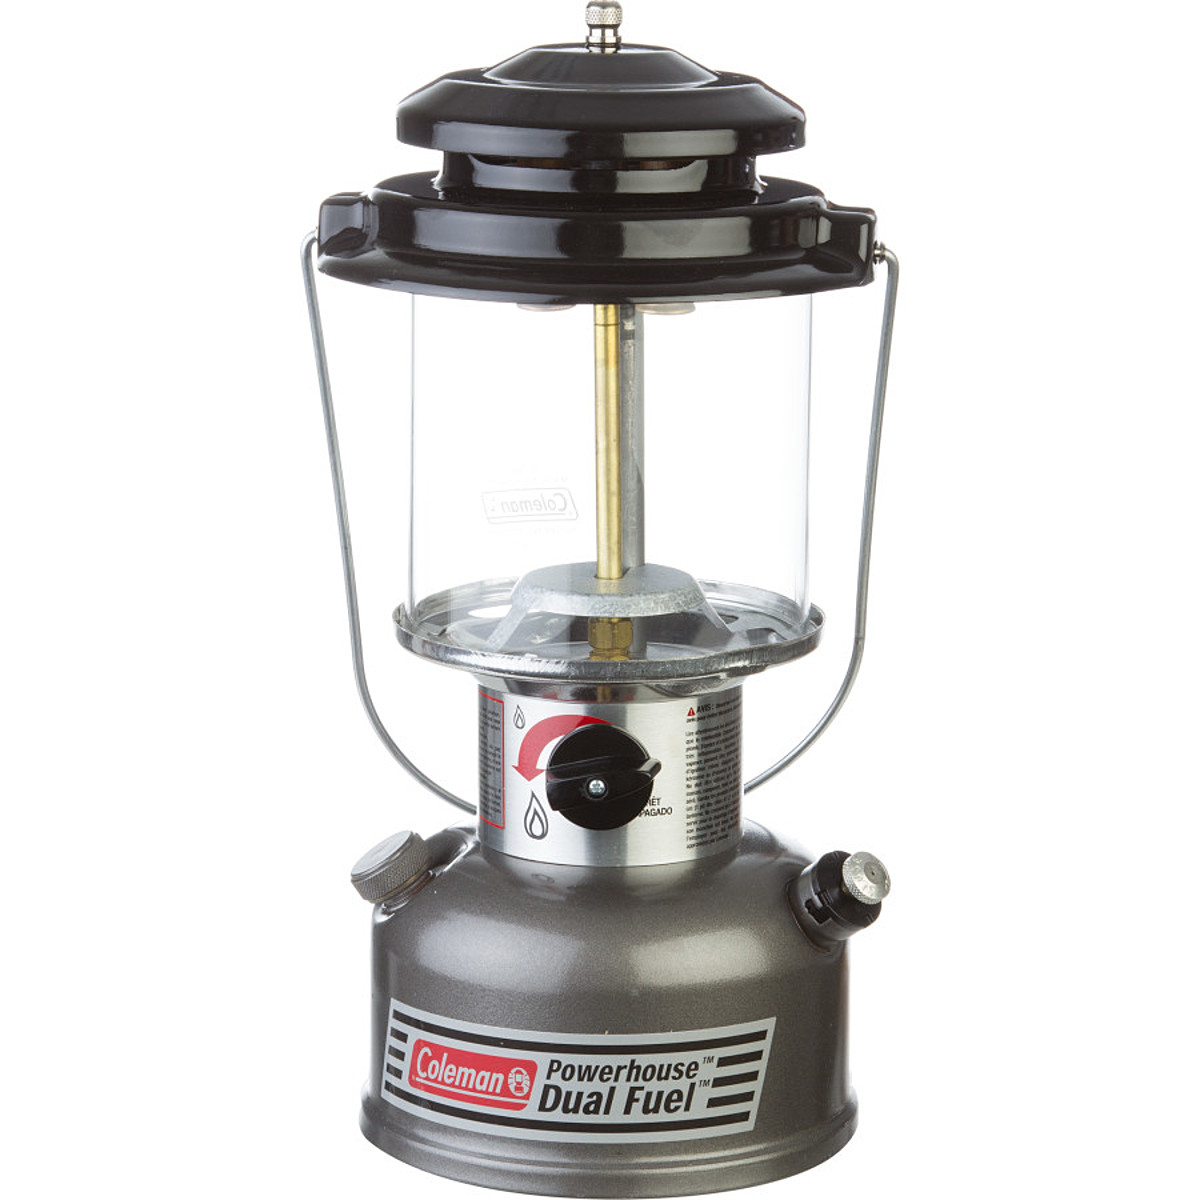 Coleman 2 Mantle Dual Fuel Lantern